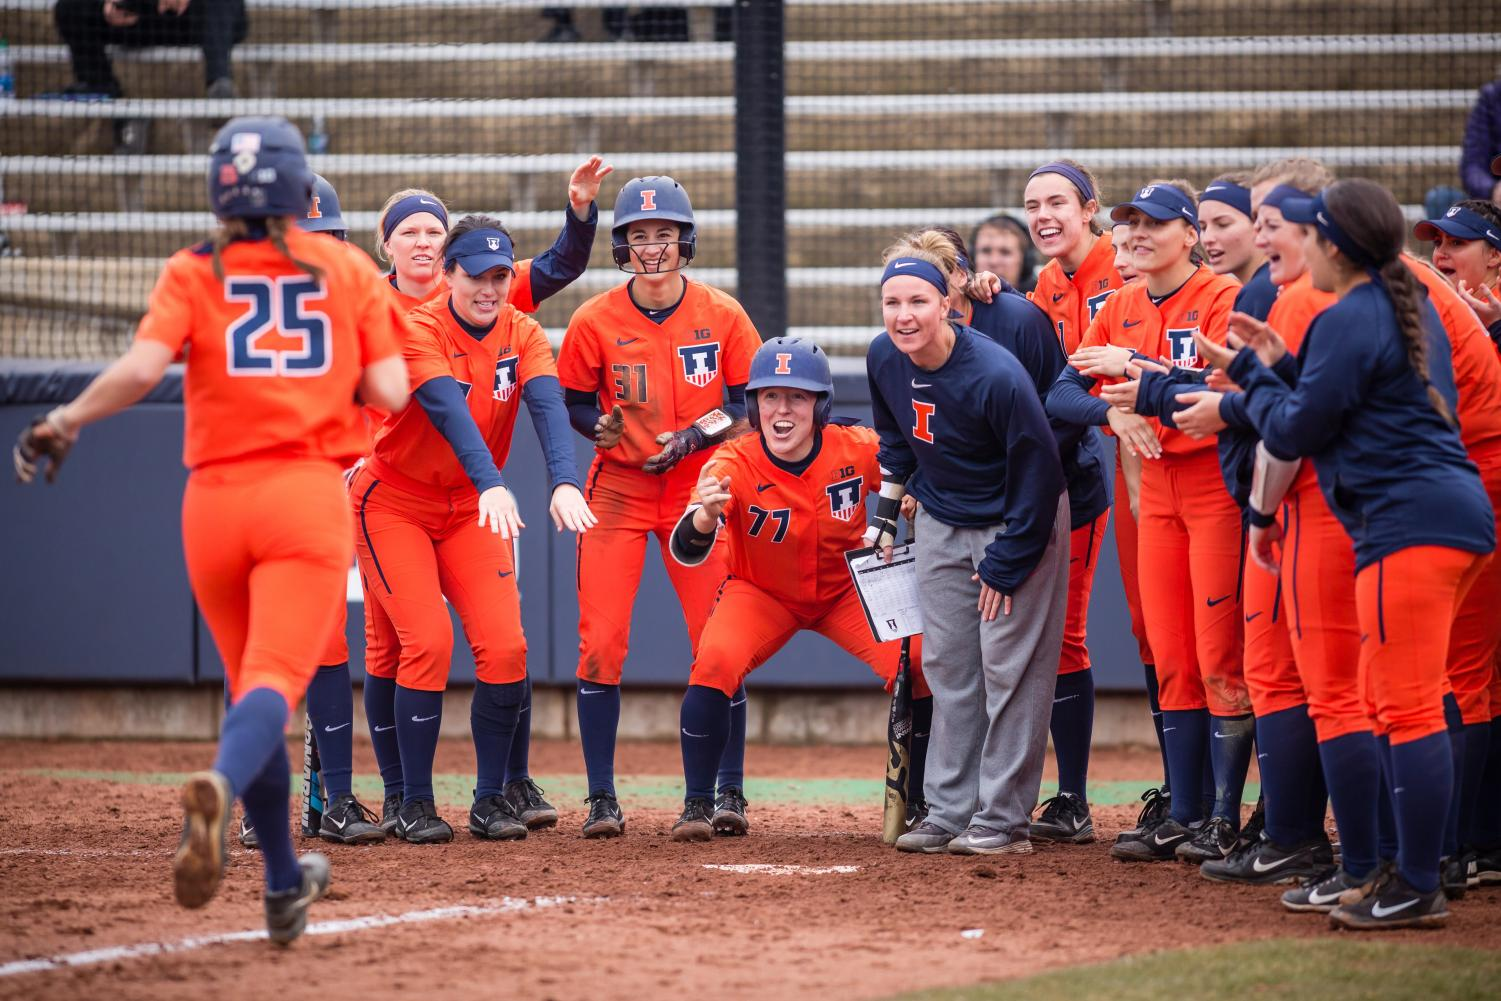 The Illini softball team celebrates at home plate after outfielder Carly Thomas (25) hit a home run during the game against Northwestern at Eichelberger Field on Wednesday, Mar. 28, 2018.